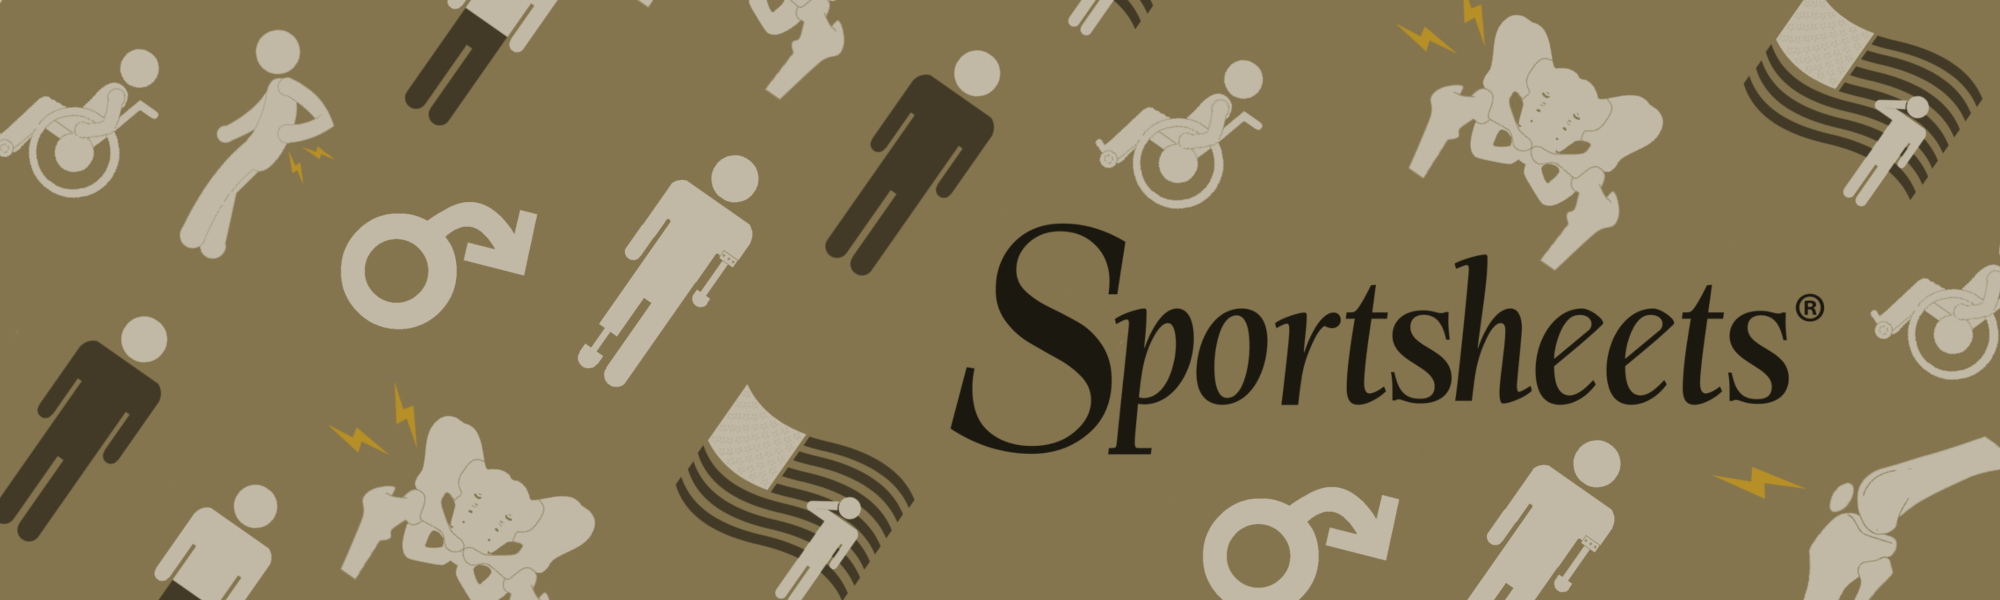 sportsheets support of persons with disabilities